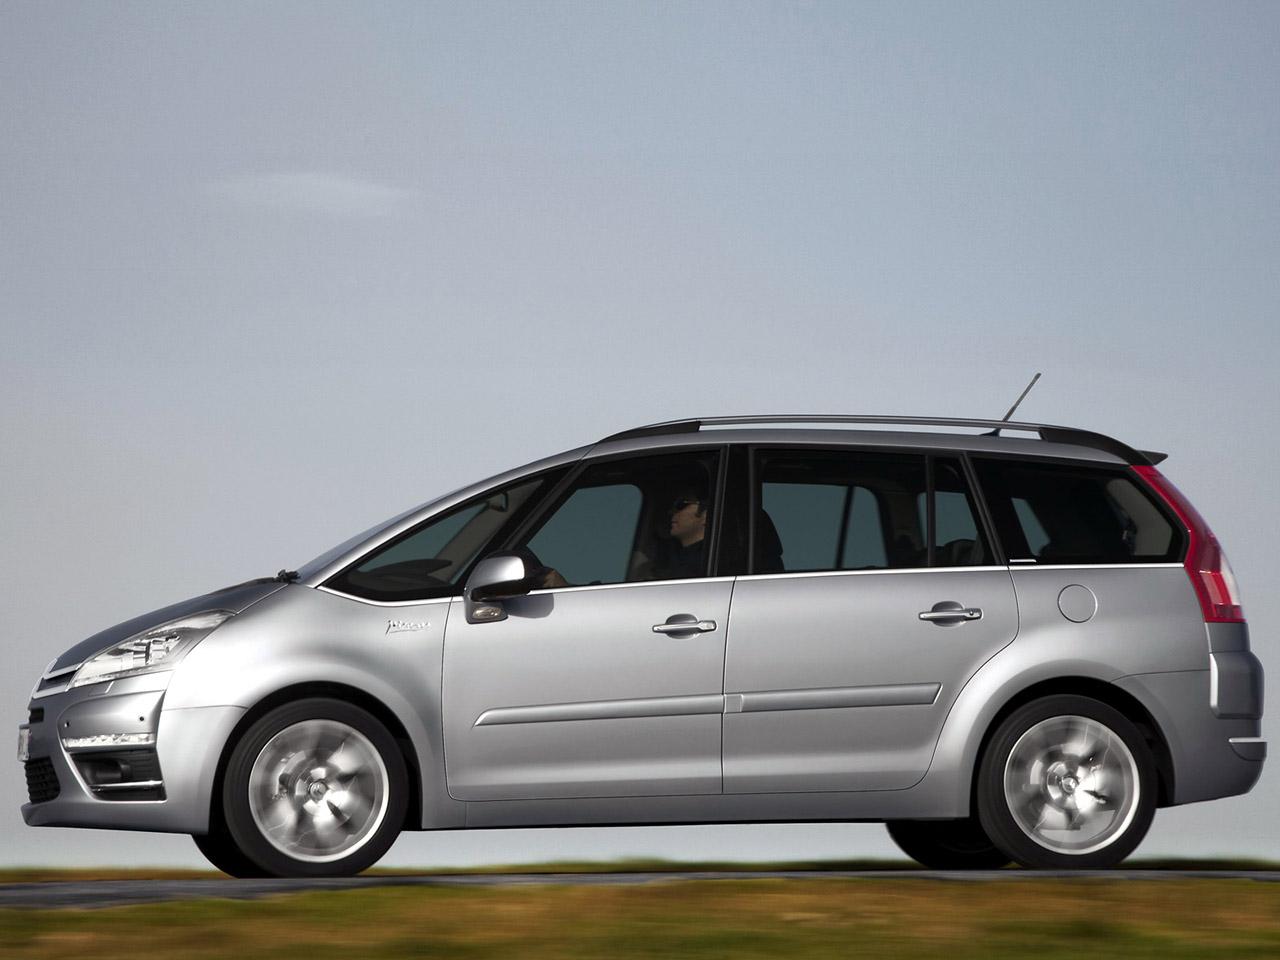 citroen c4 grand picasso 2010 citroen c4 grand picasso 2010 photo 03 car in pictures car. Black Bedroom Furniture Sets. Home Design Ideas